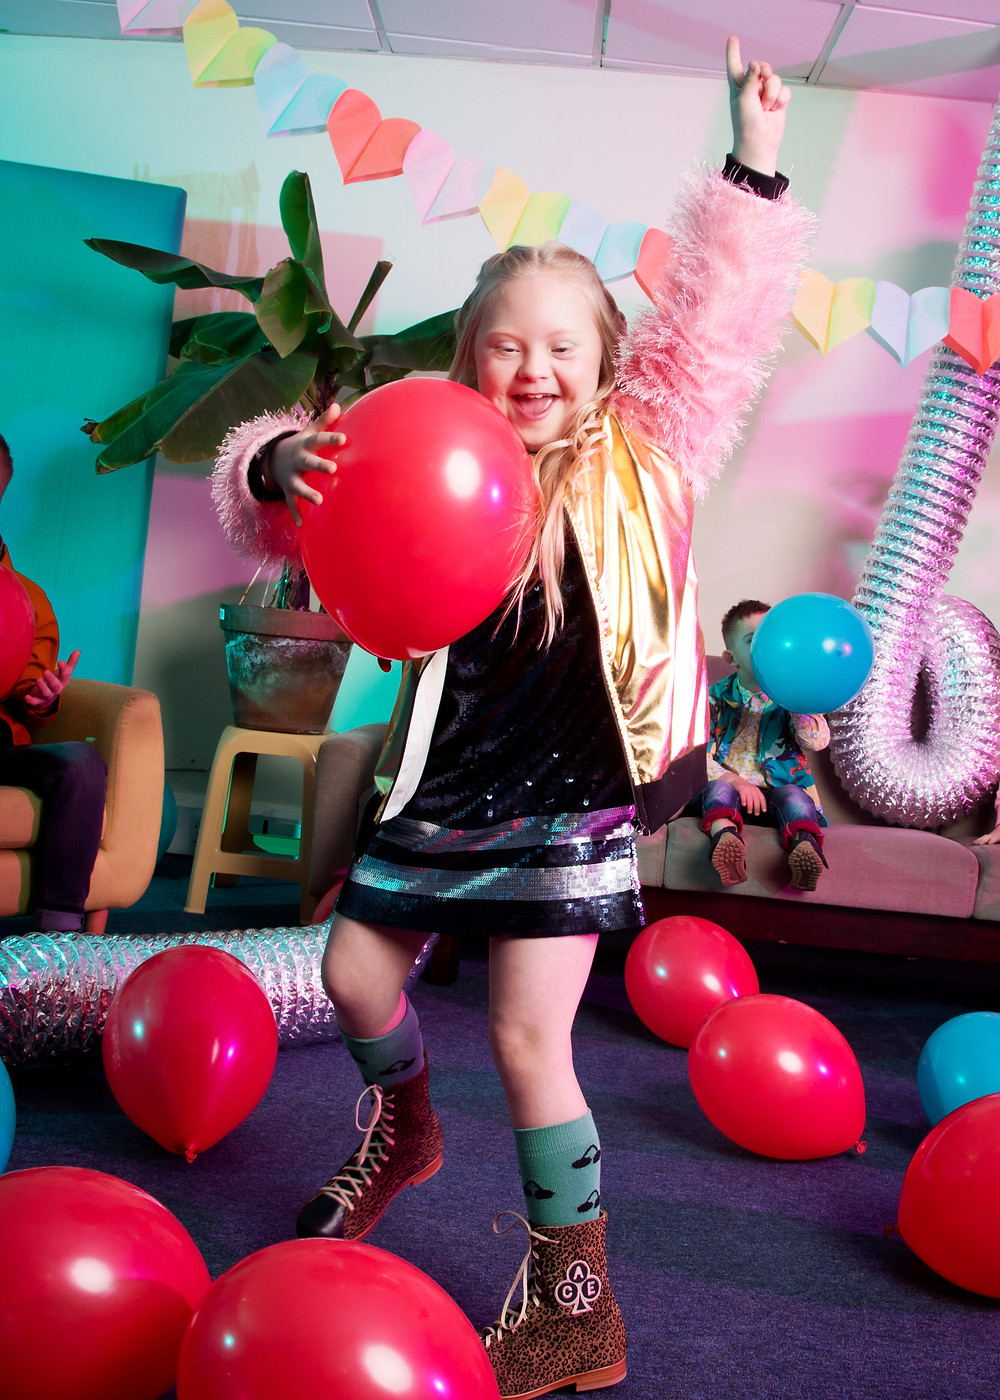 Kids fashion photo shoot for World Down Syndrome